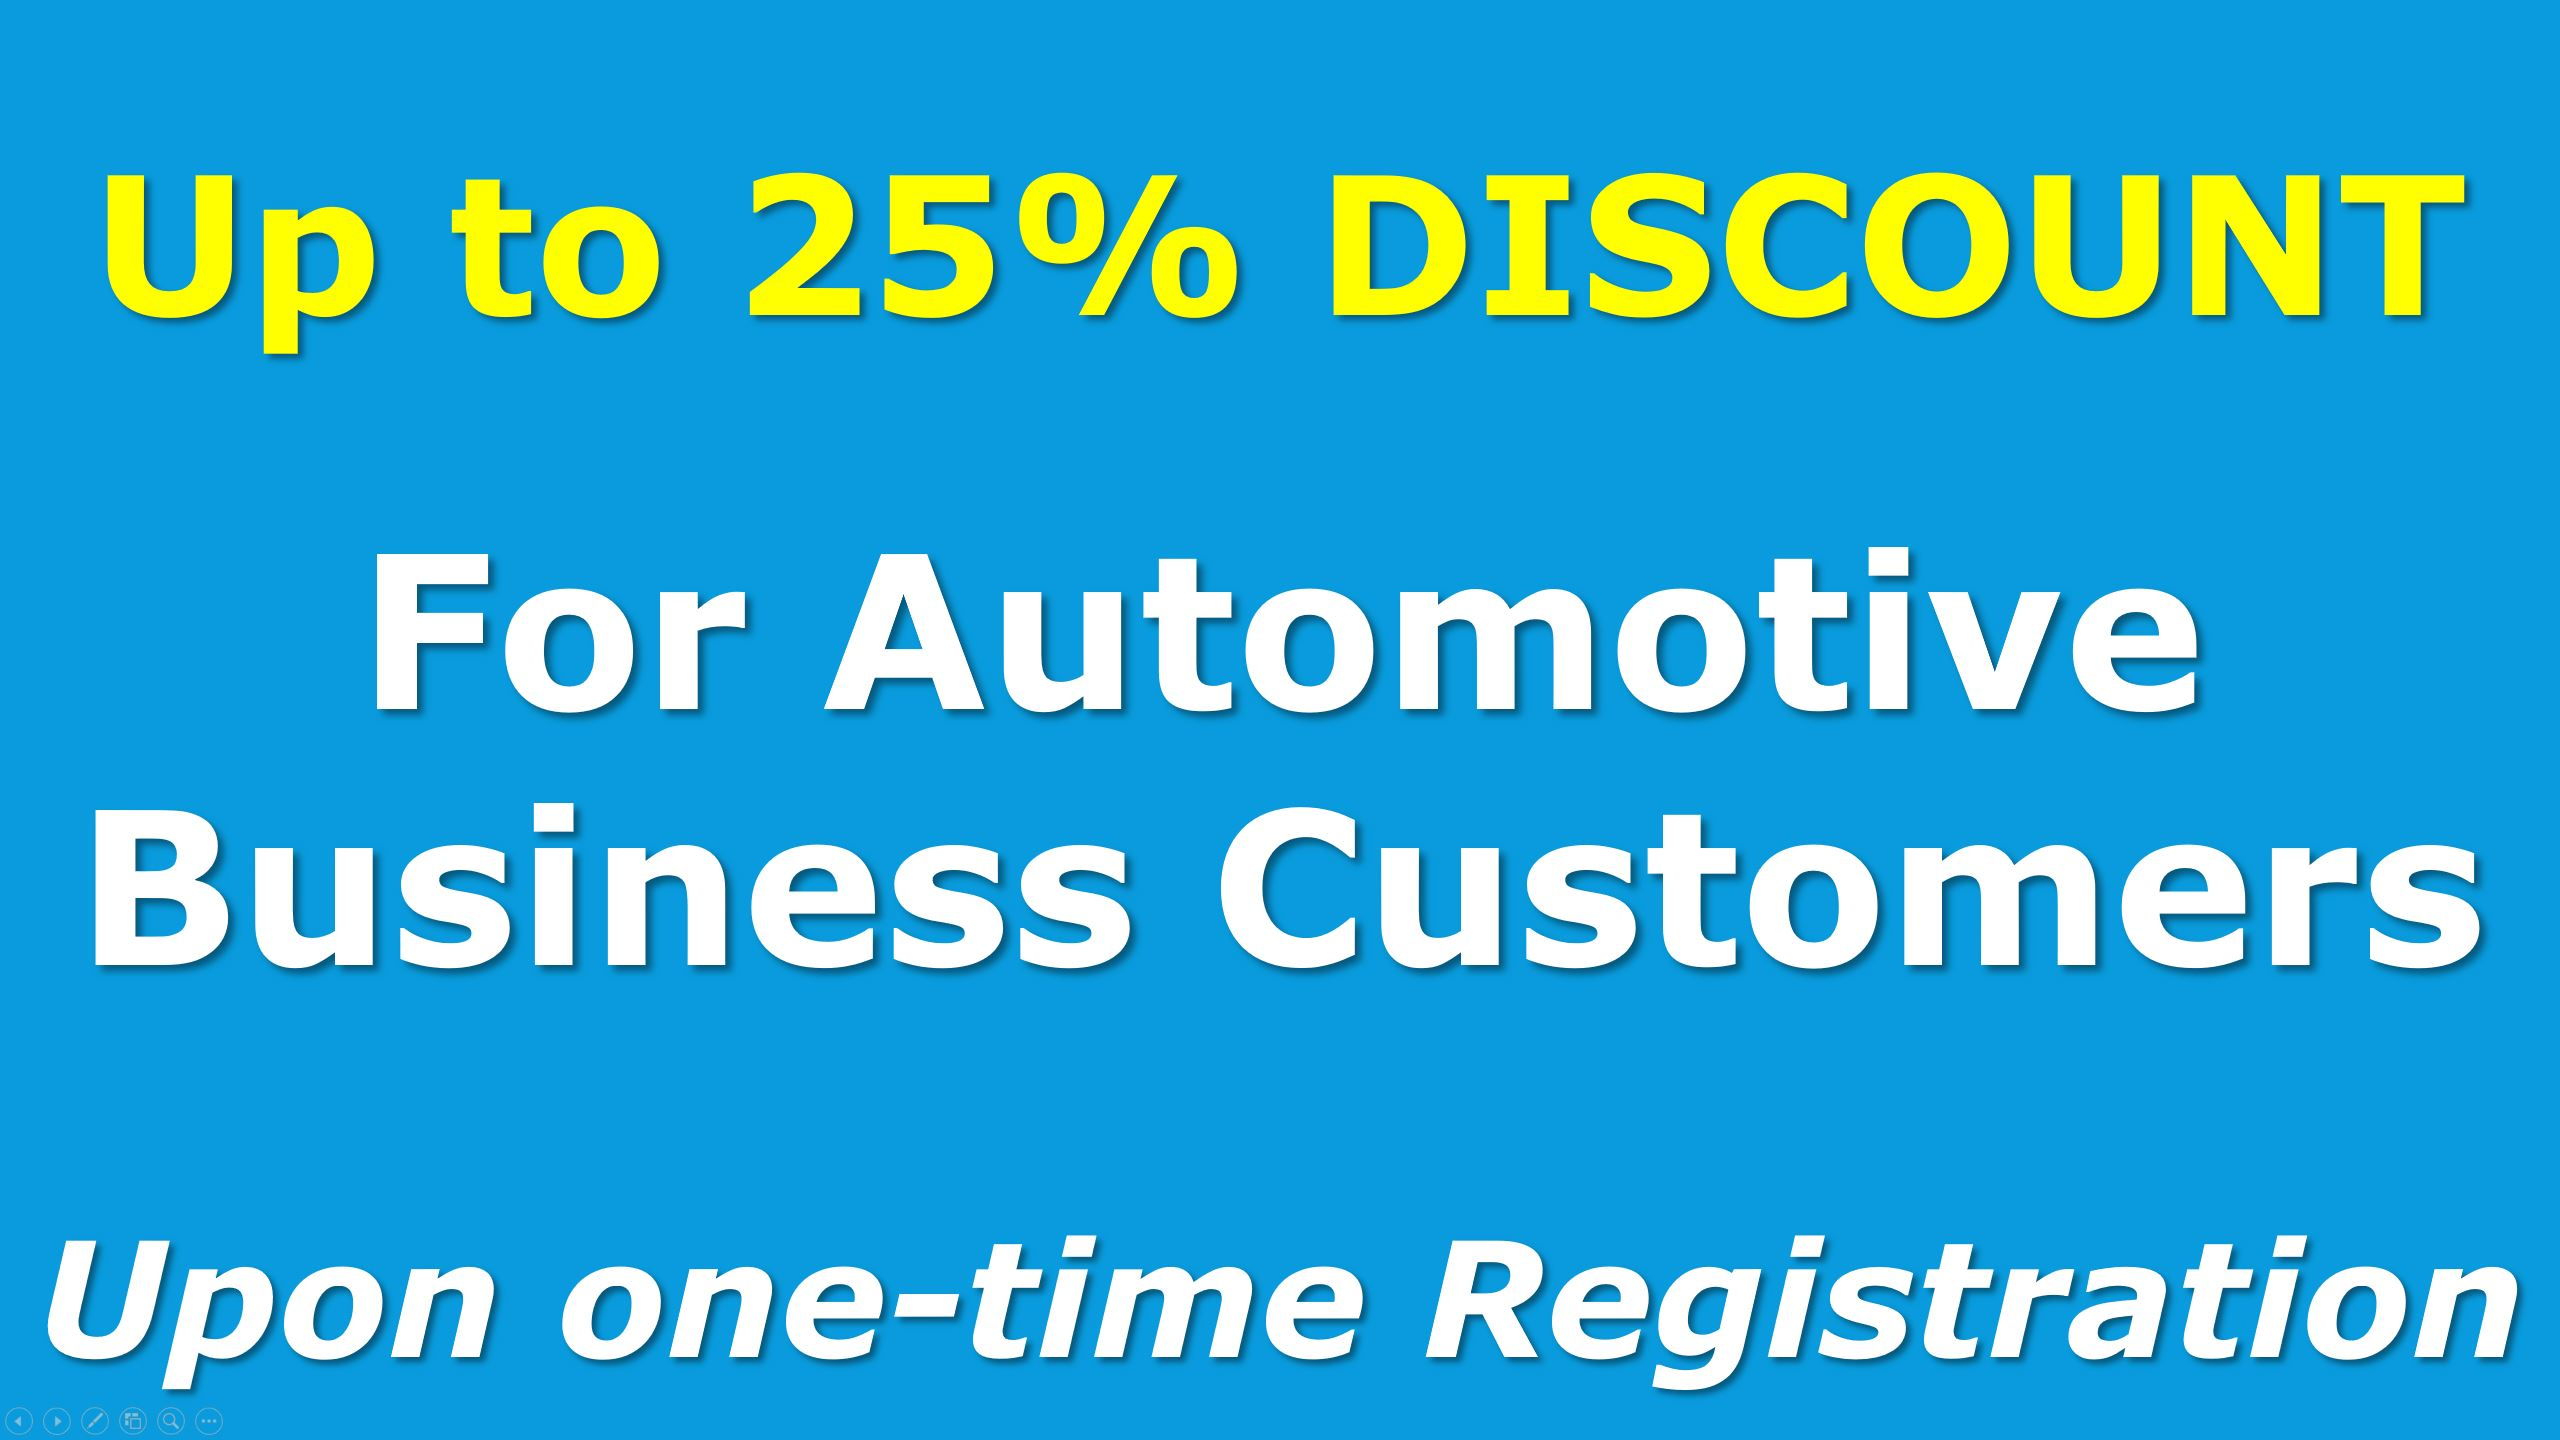 Discount for Automotive B2B